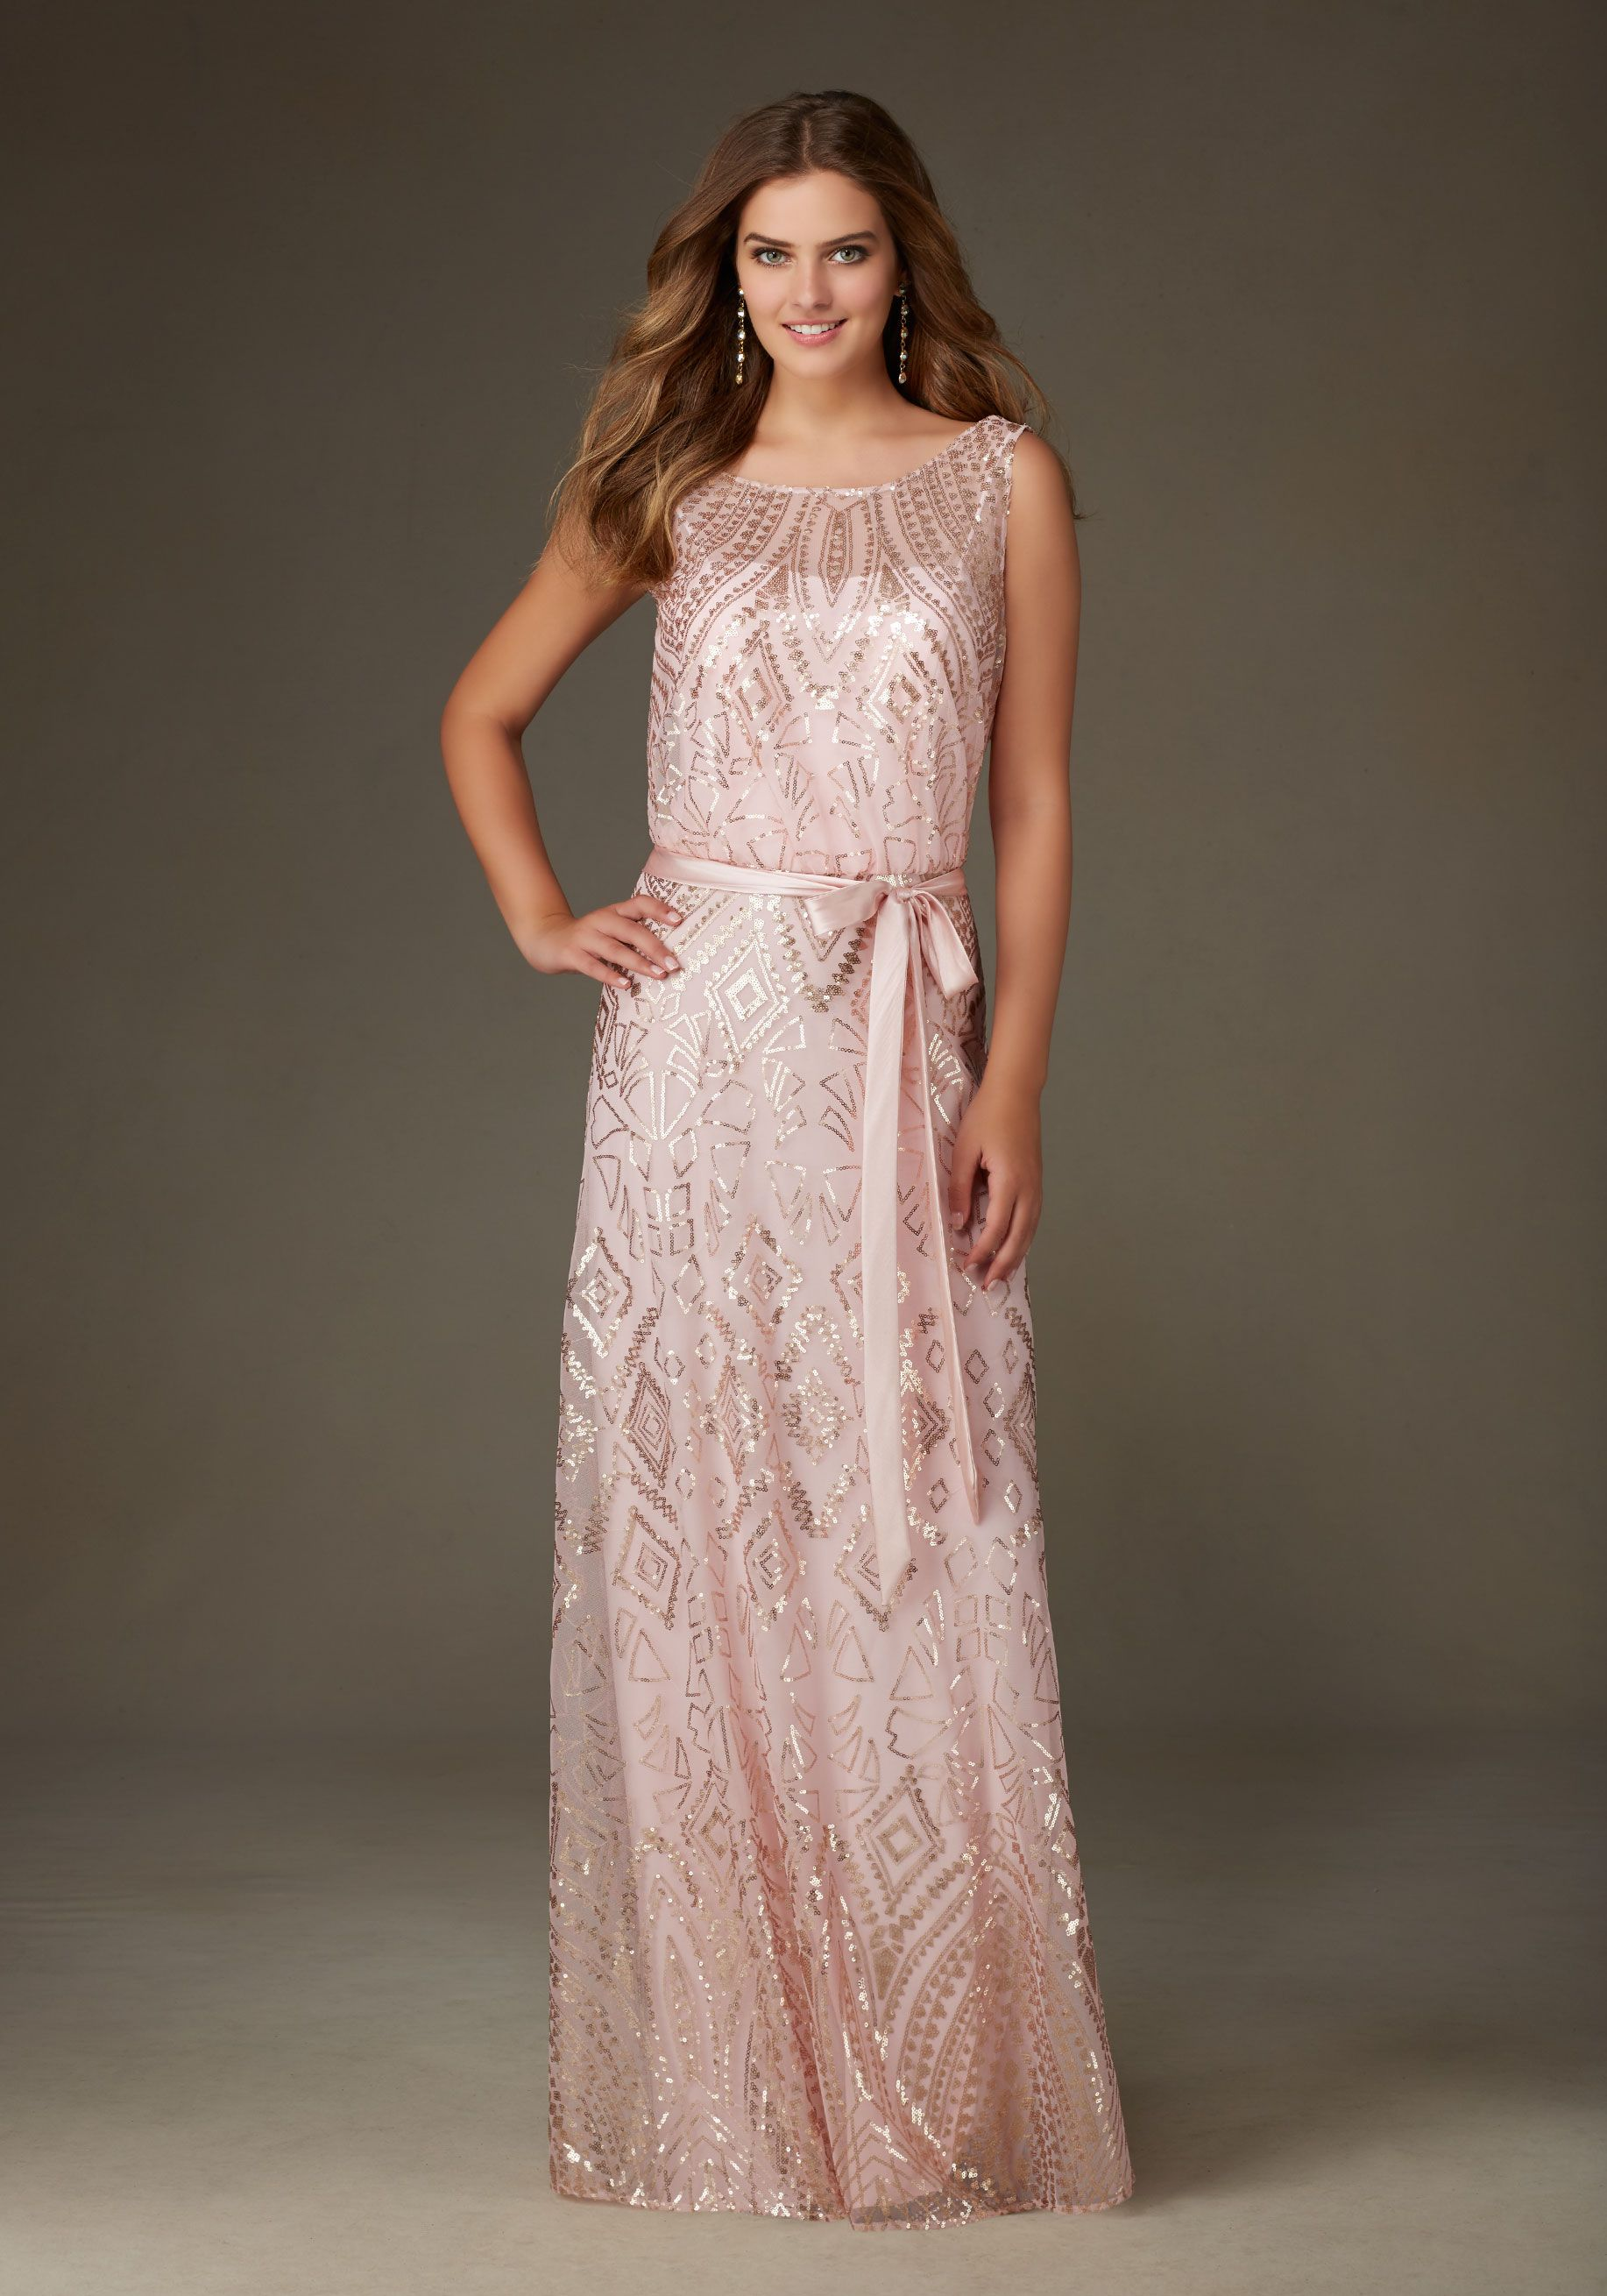 Long patterned sequin on mesh bridesmaid dress designed by long patterned sequin on mesh bridesmaid dress designed by madeline gardner colors available blush ombrellifo Images